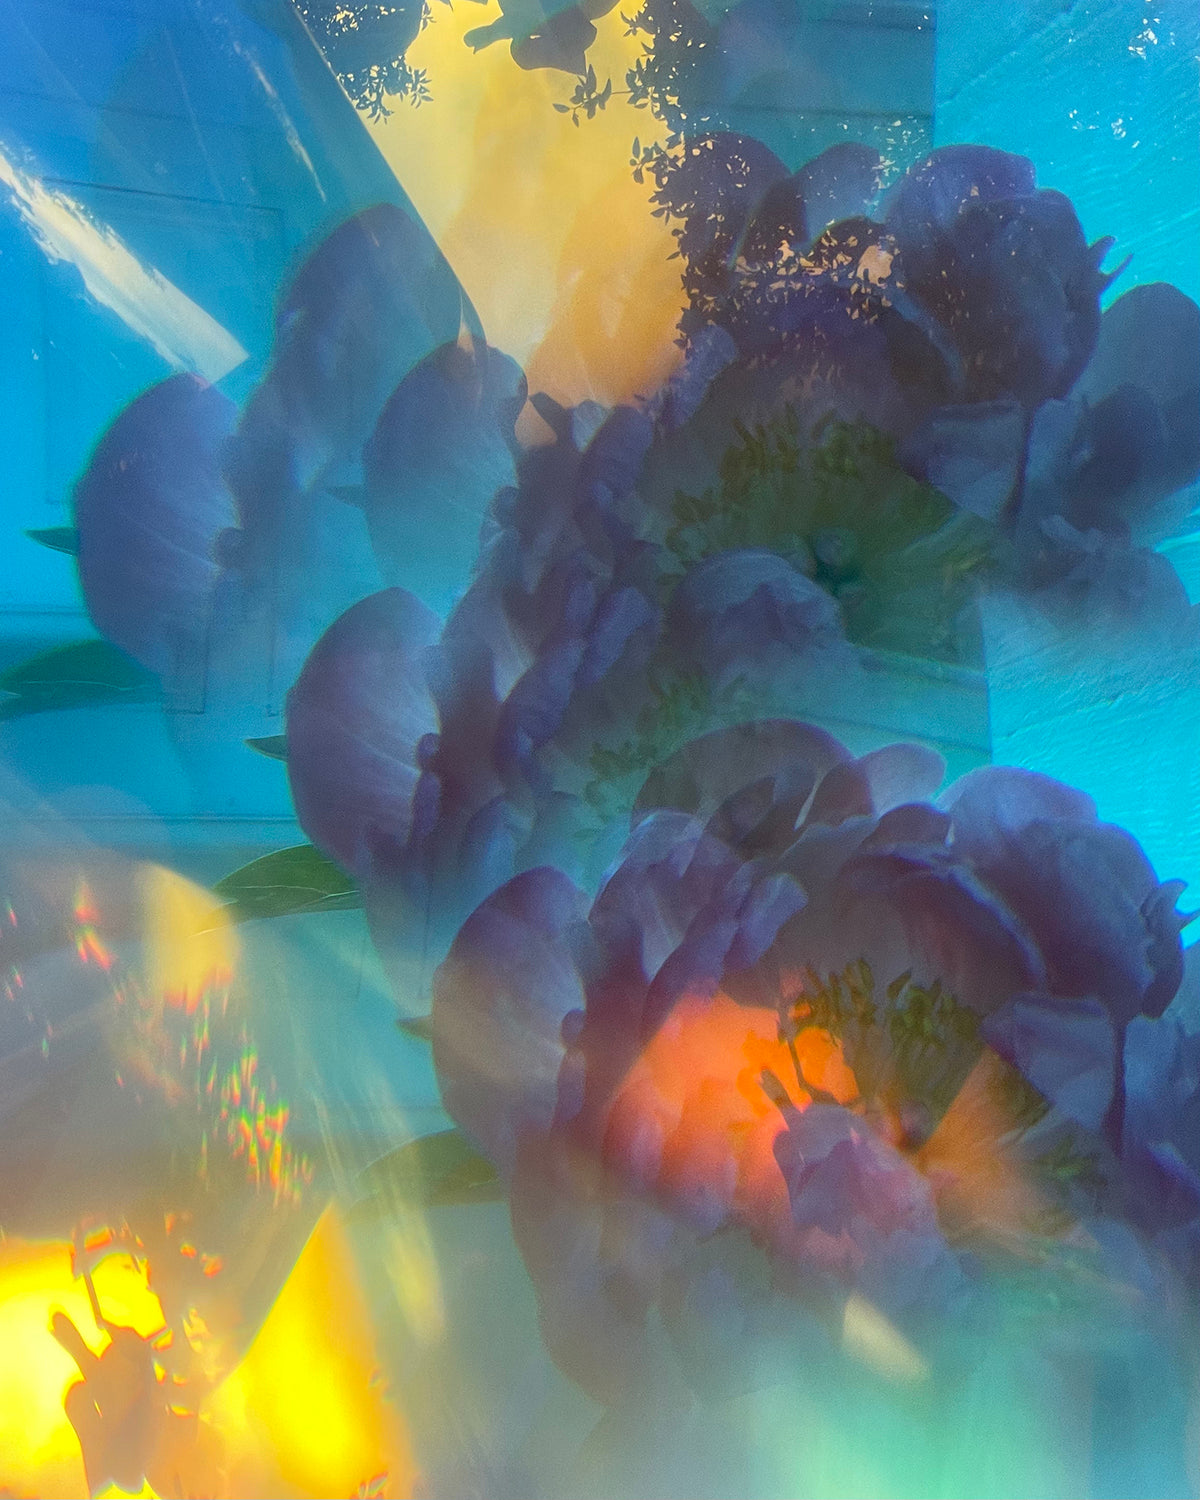 Crystal overlay to create distorted view of peonies and reflections of the sky